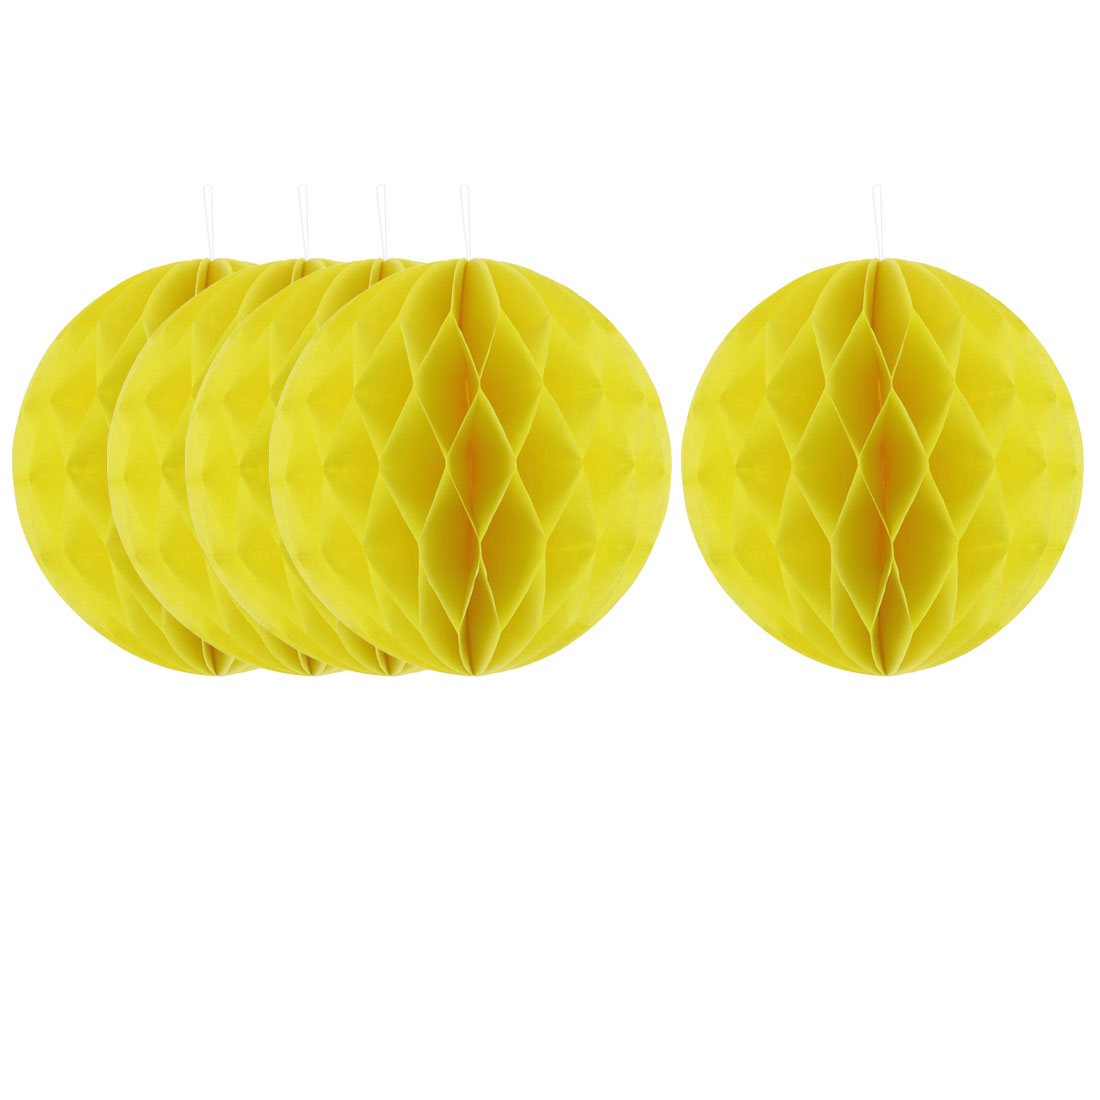 Party Lantern Design Tree Hanging DIY Decor Honeycomb Ball Yellow 6 Inch Dia 5pcs